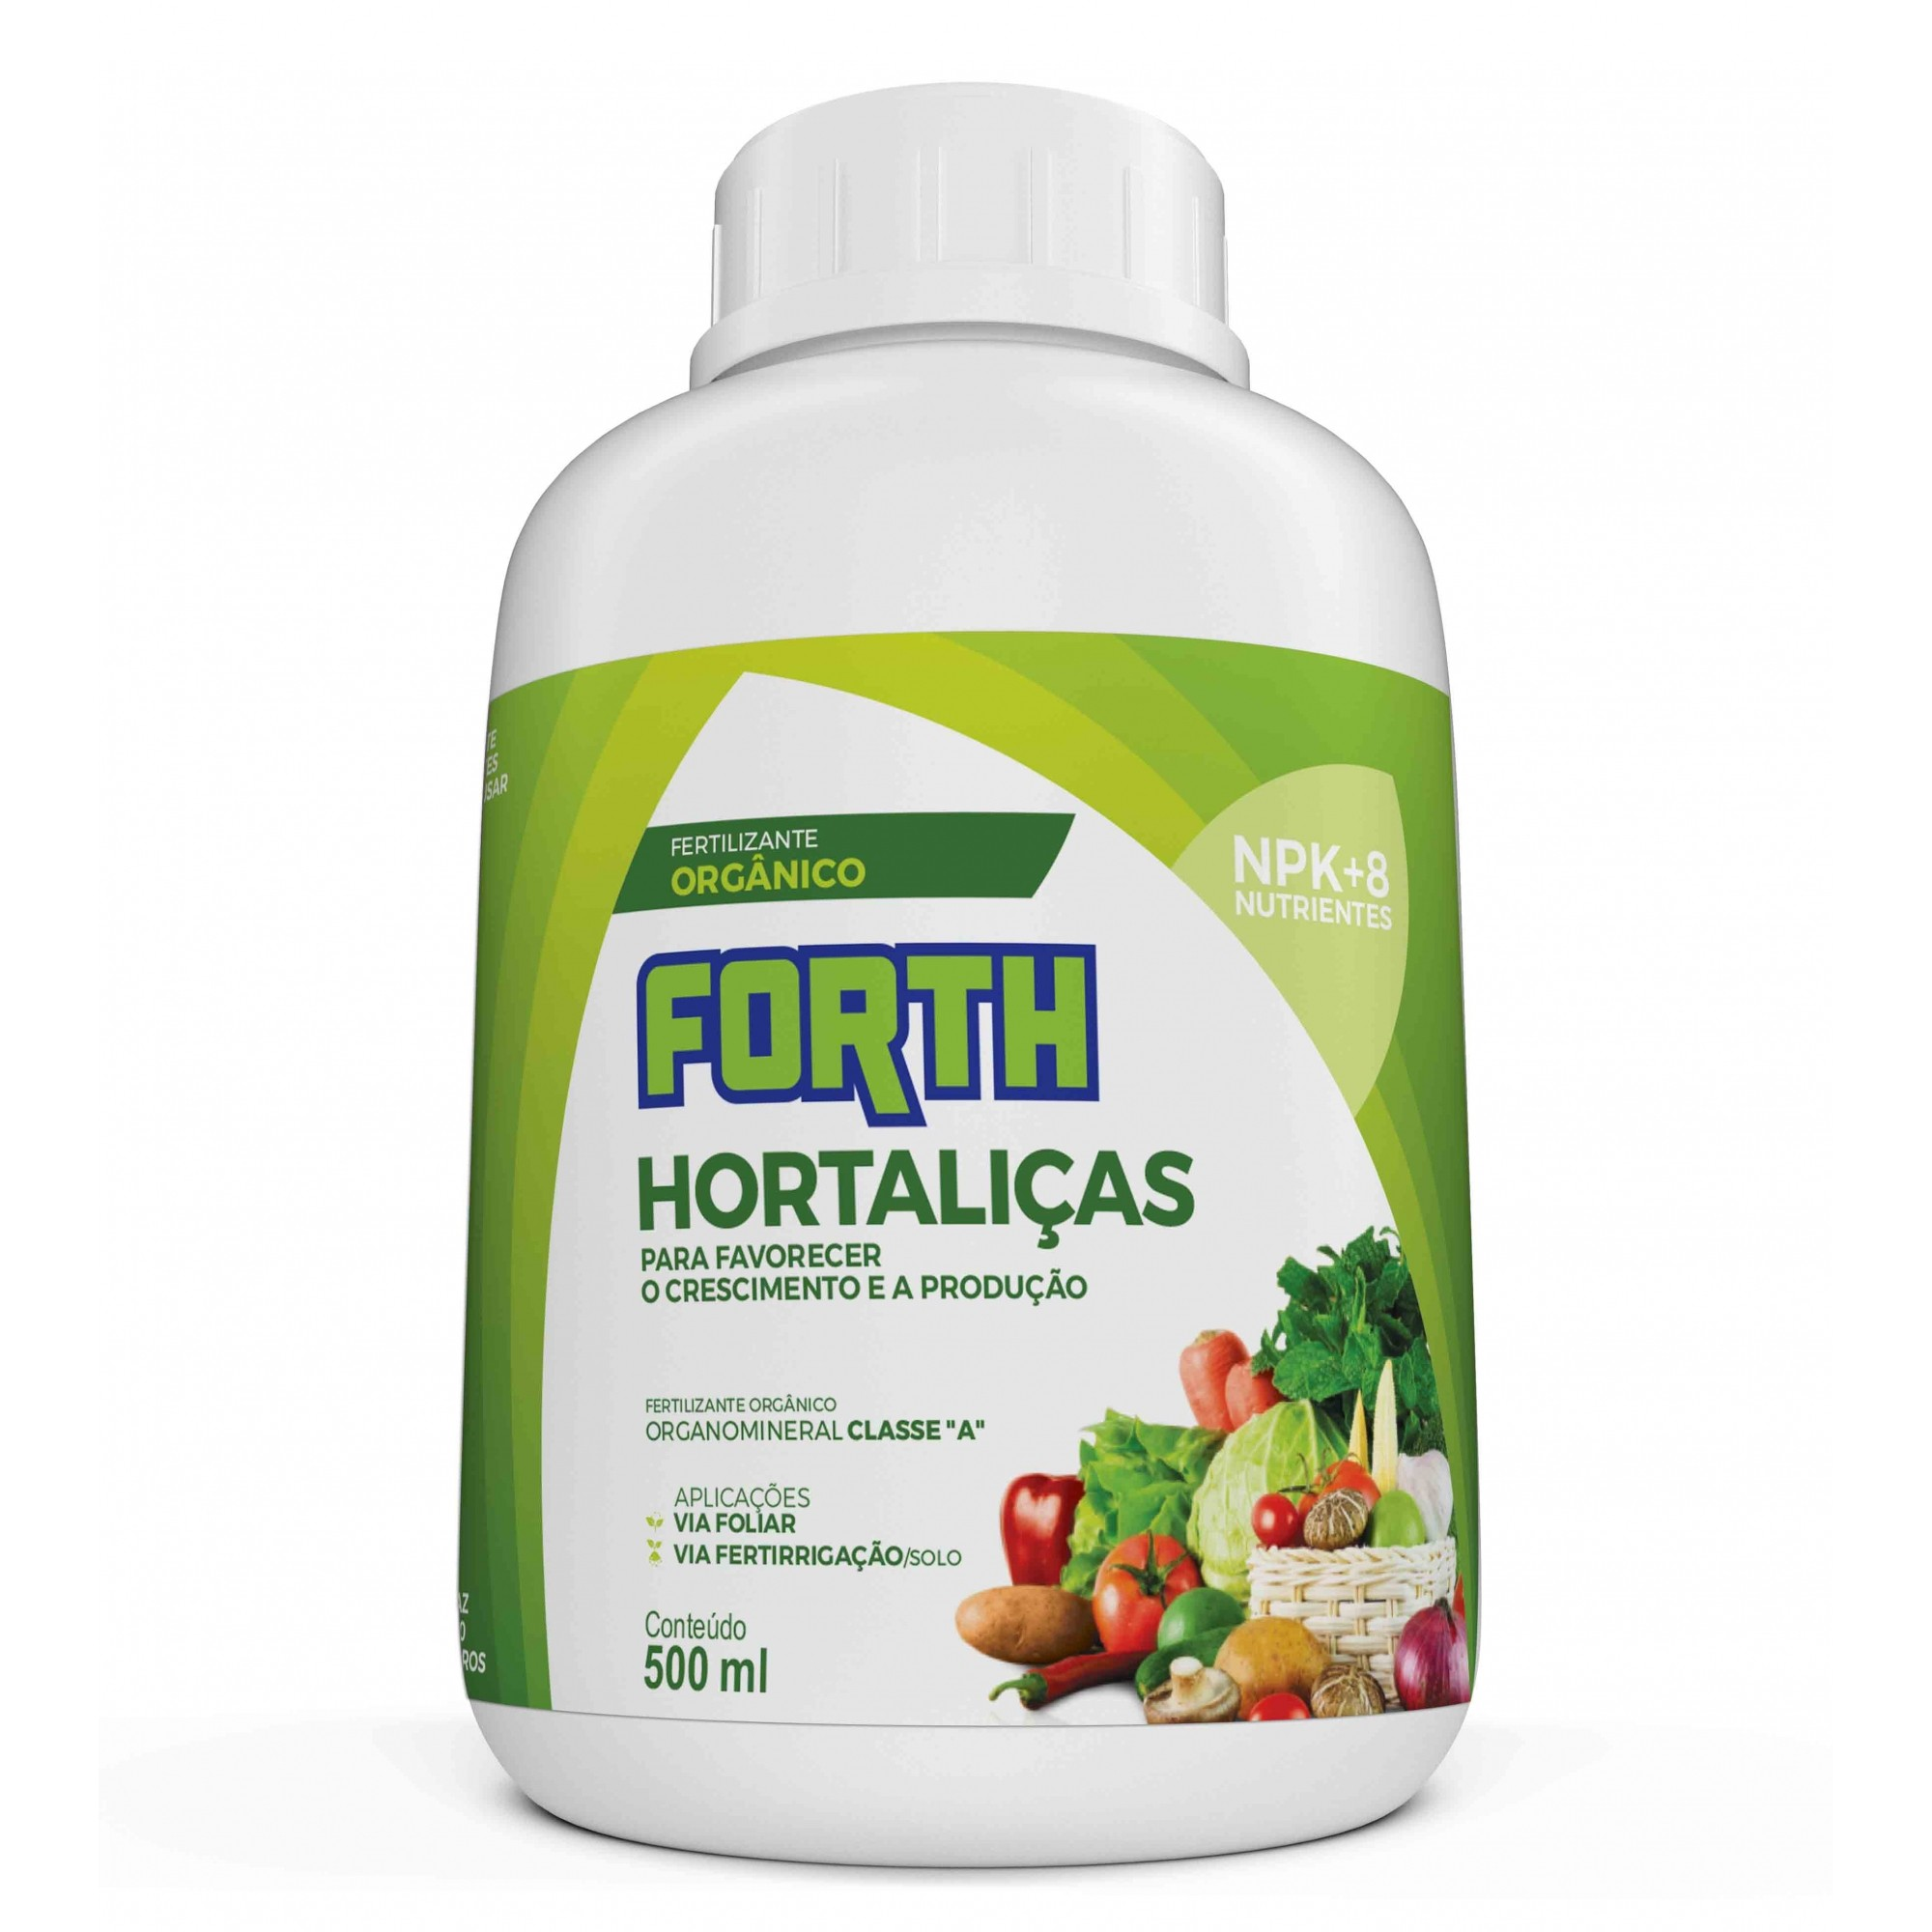 Fertilizante Forth Hortaliças 500ml concentrado